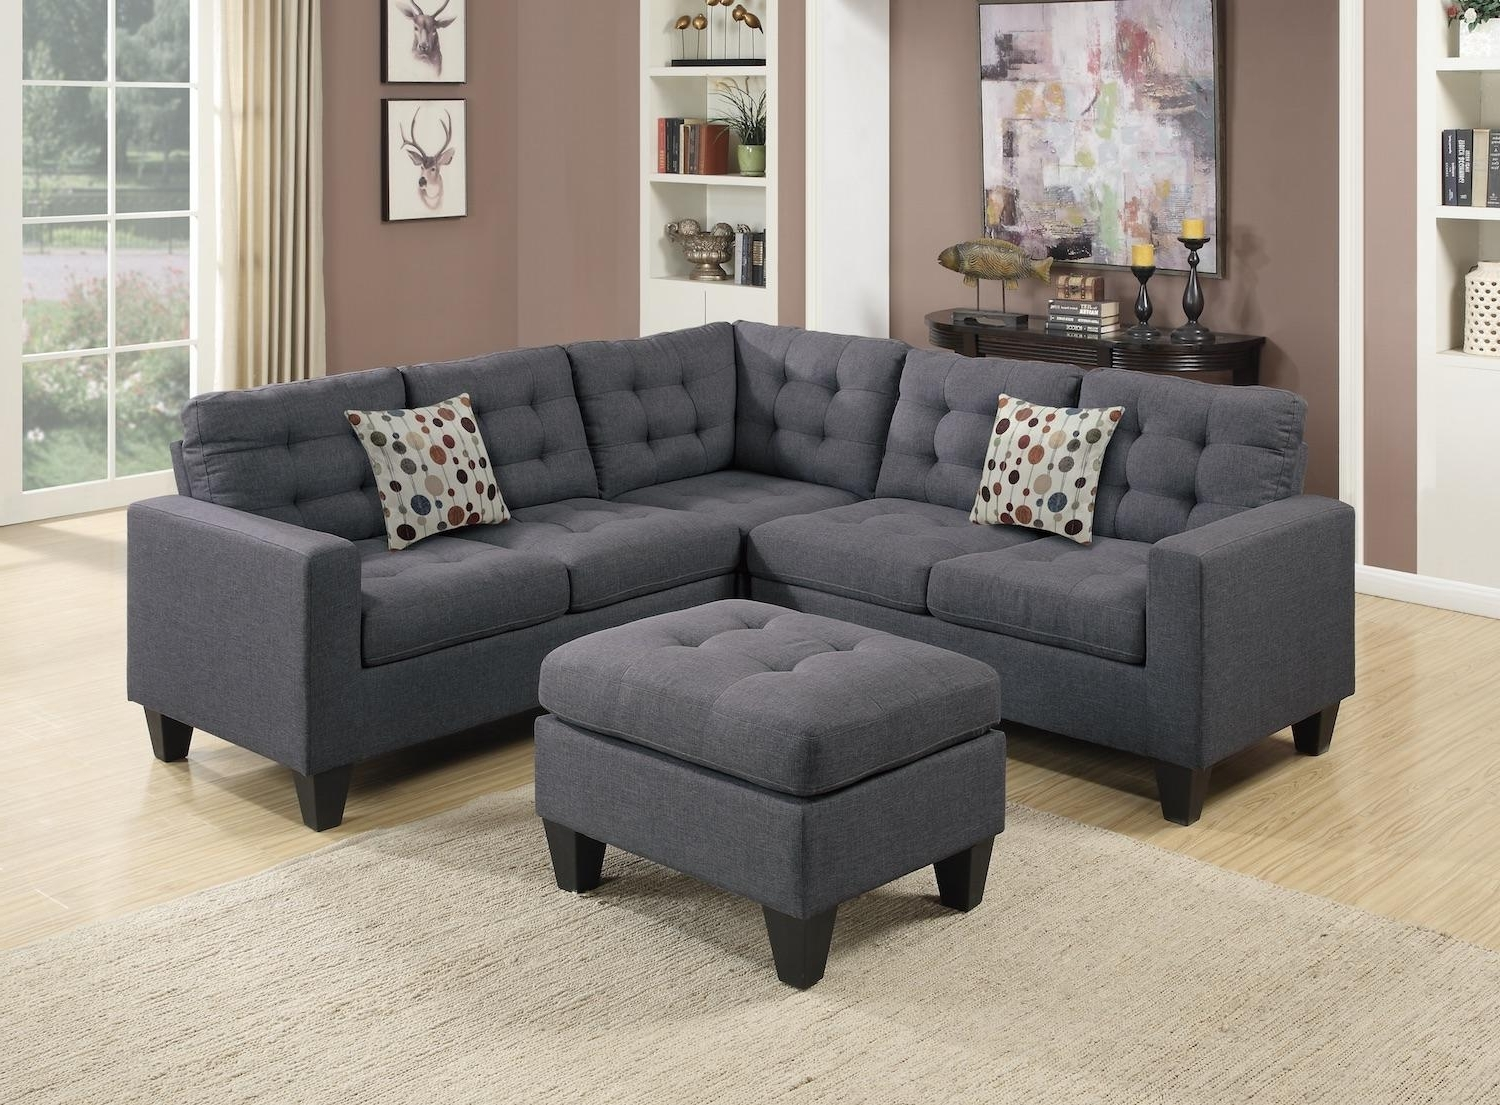 Wayfair Sectional Sofas Regarding Latest Wayfair, Ifin1022, Amazon, Poundex, F6935, Grey, Sectional, Sofa (View 13 of 20)